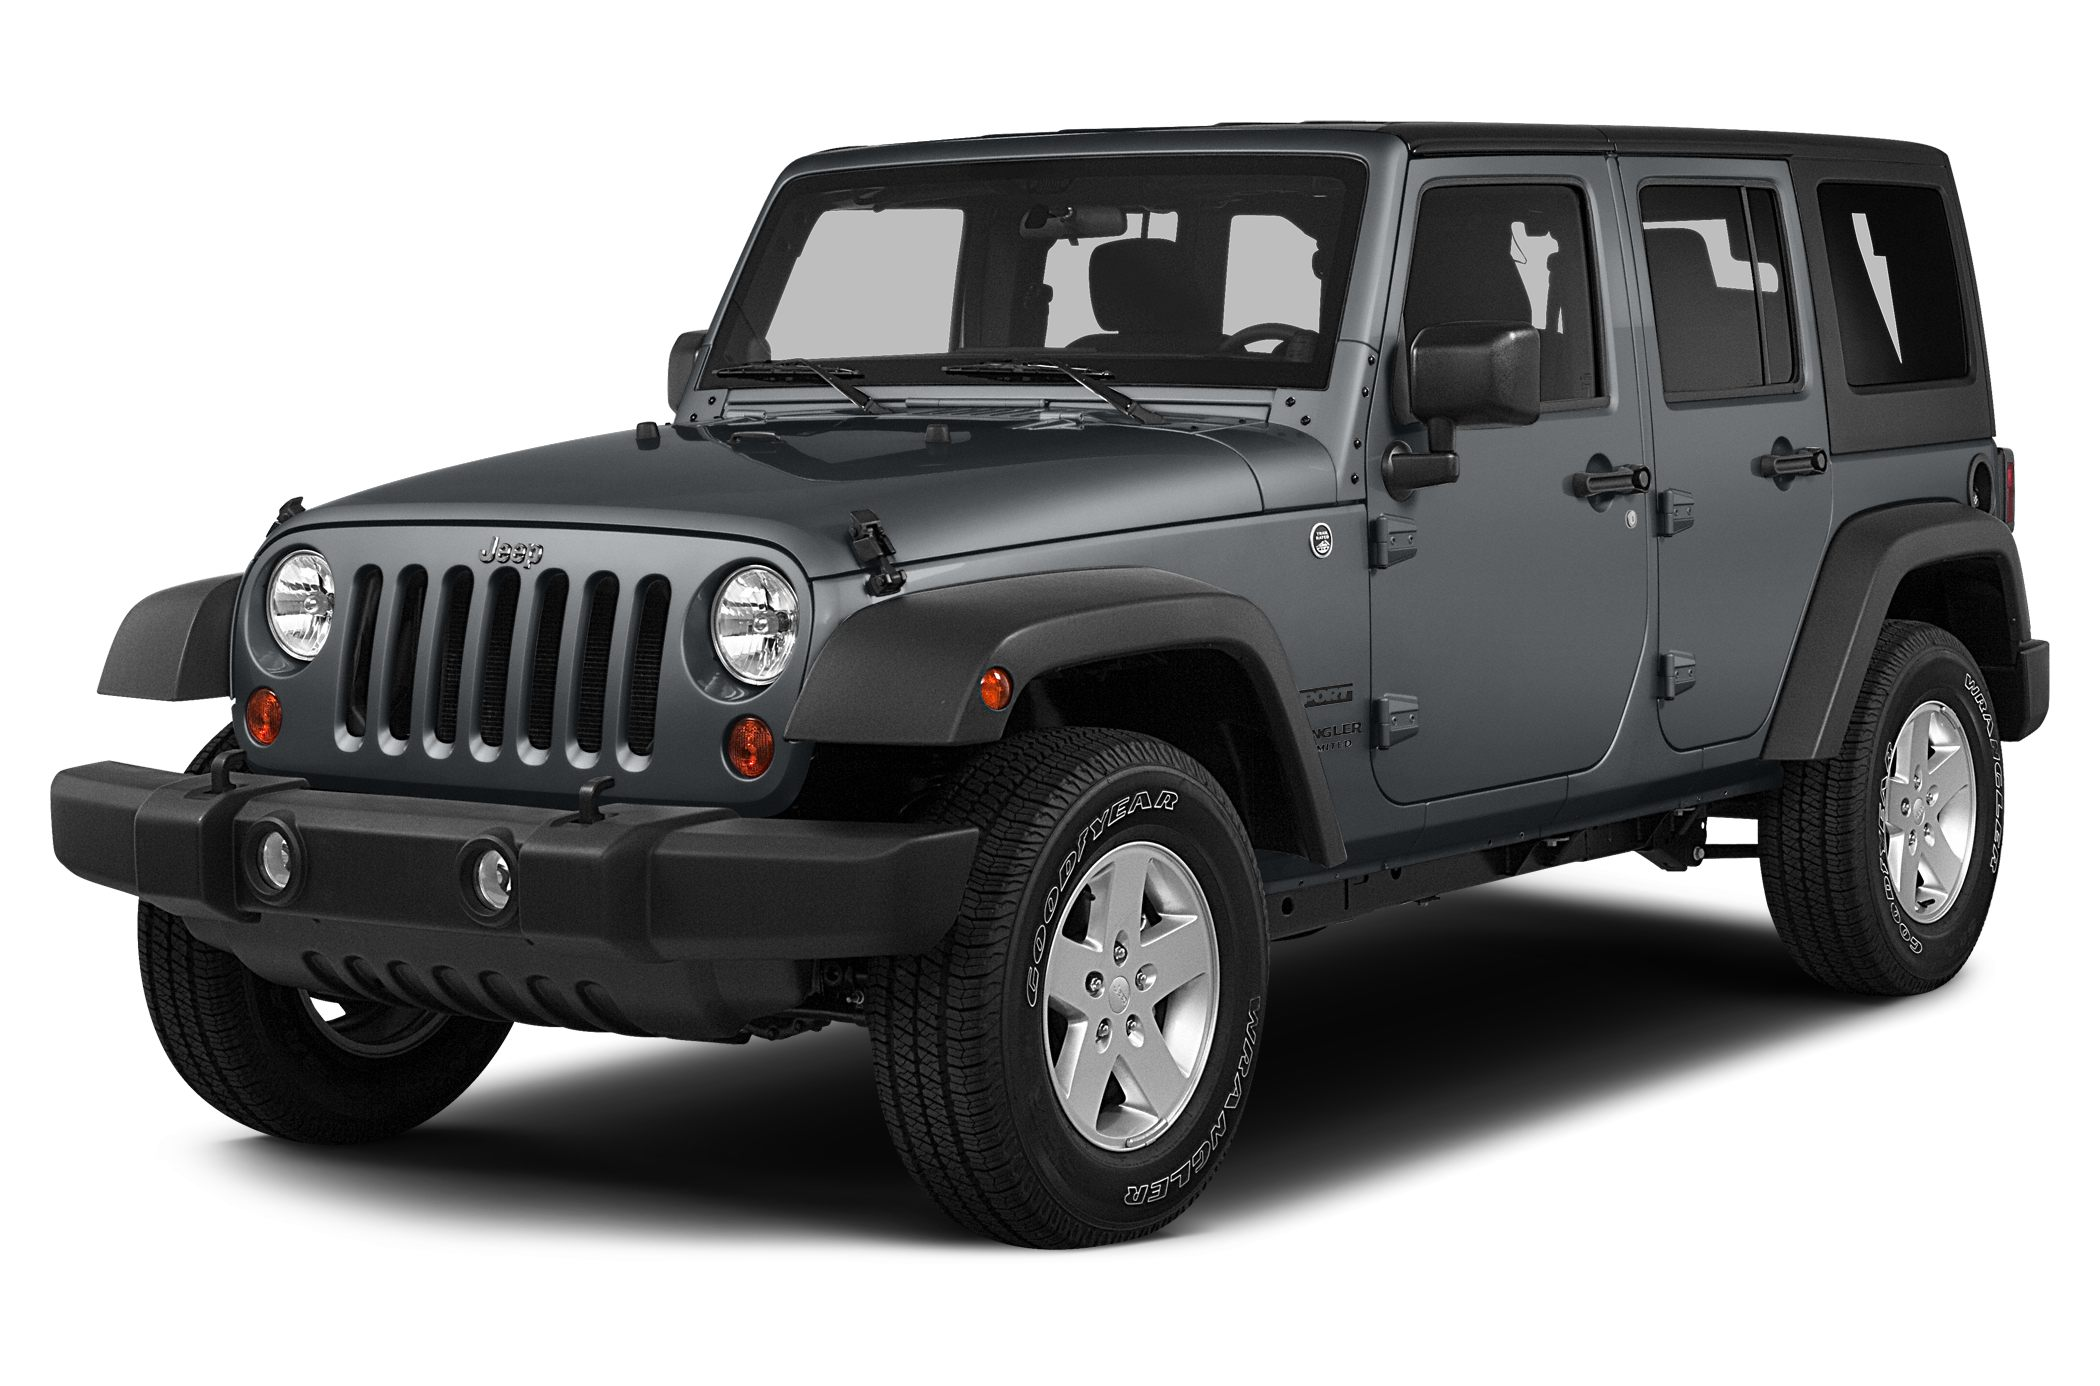 2014 Jeep Wrangler Unlimited Rubicon SUV for sale in San Angelo for $38,997 with 14,530 miles.